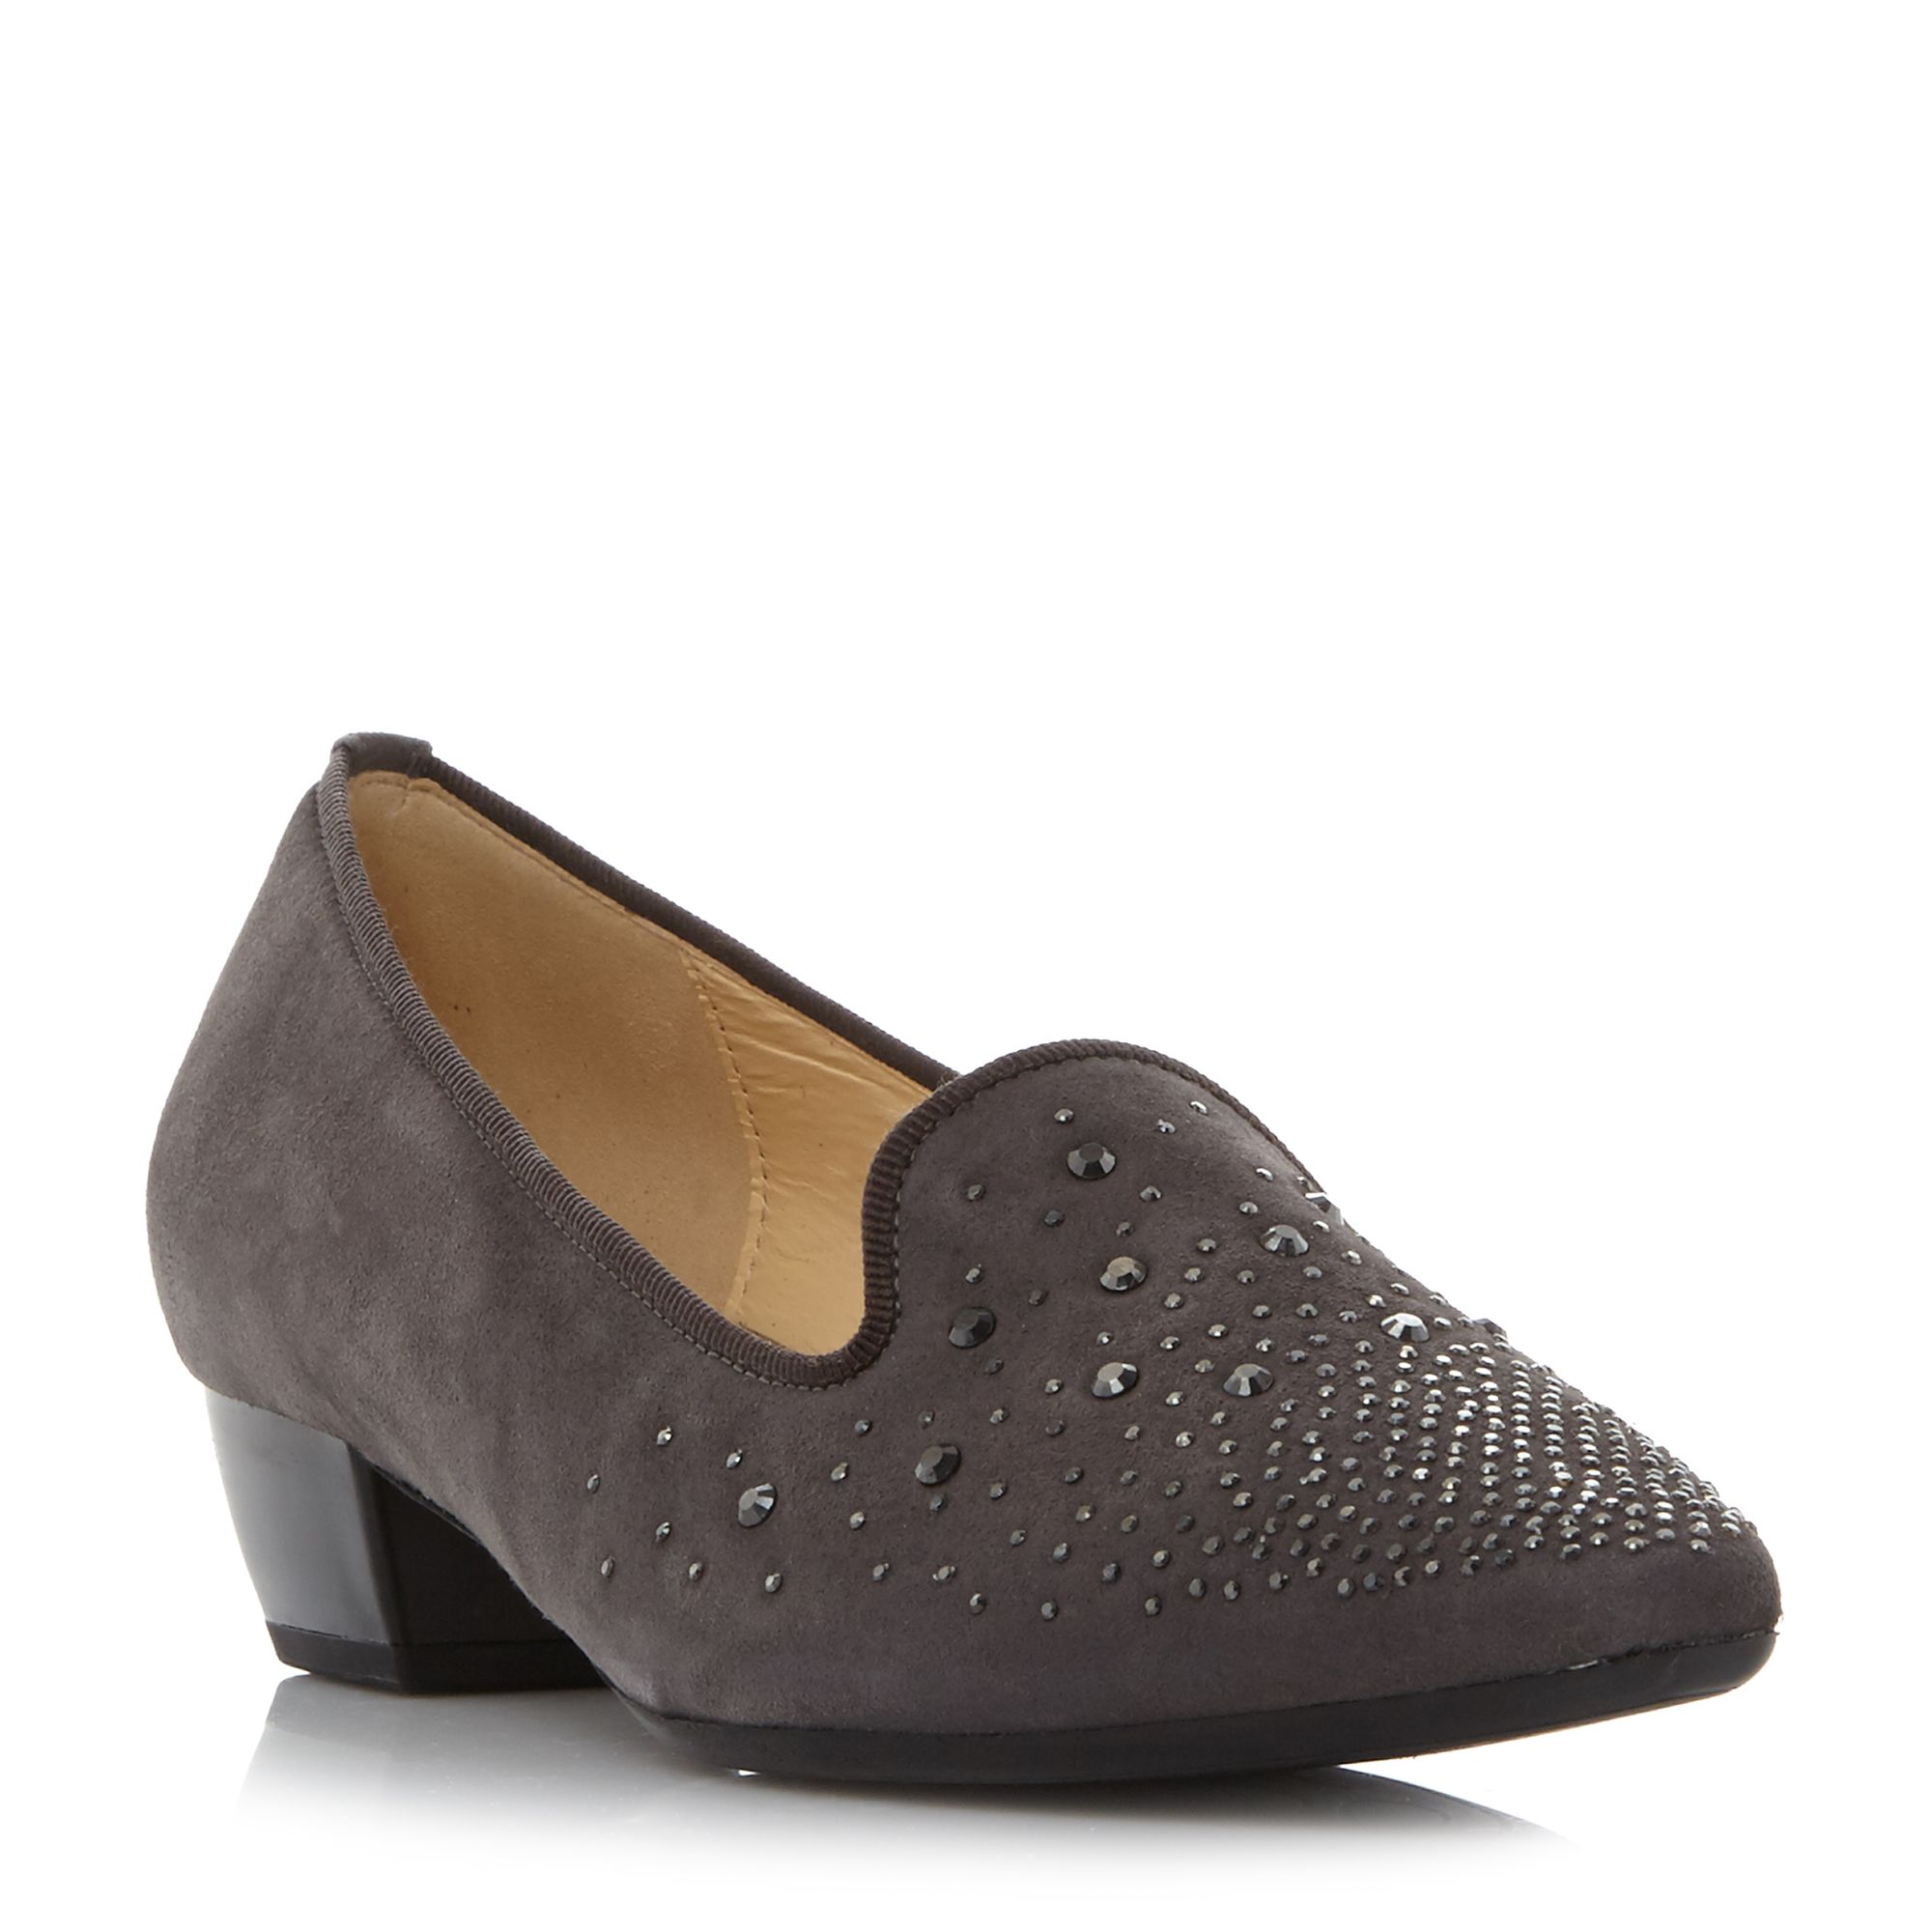 Gabor GOODY EMBELLISHED POINTED PUMP SHOES, Grey